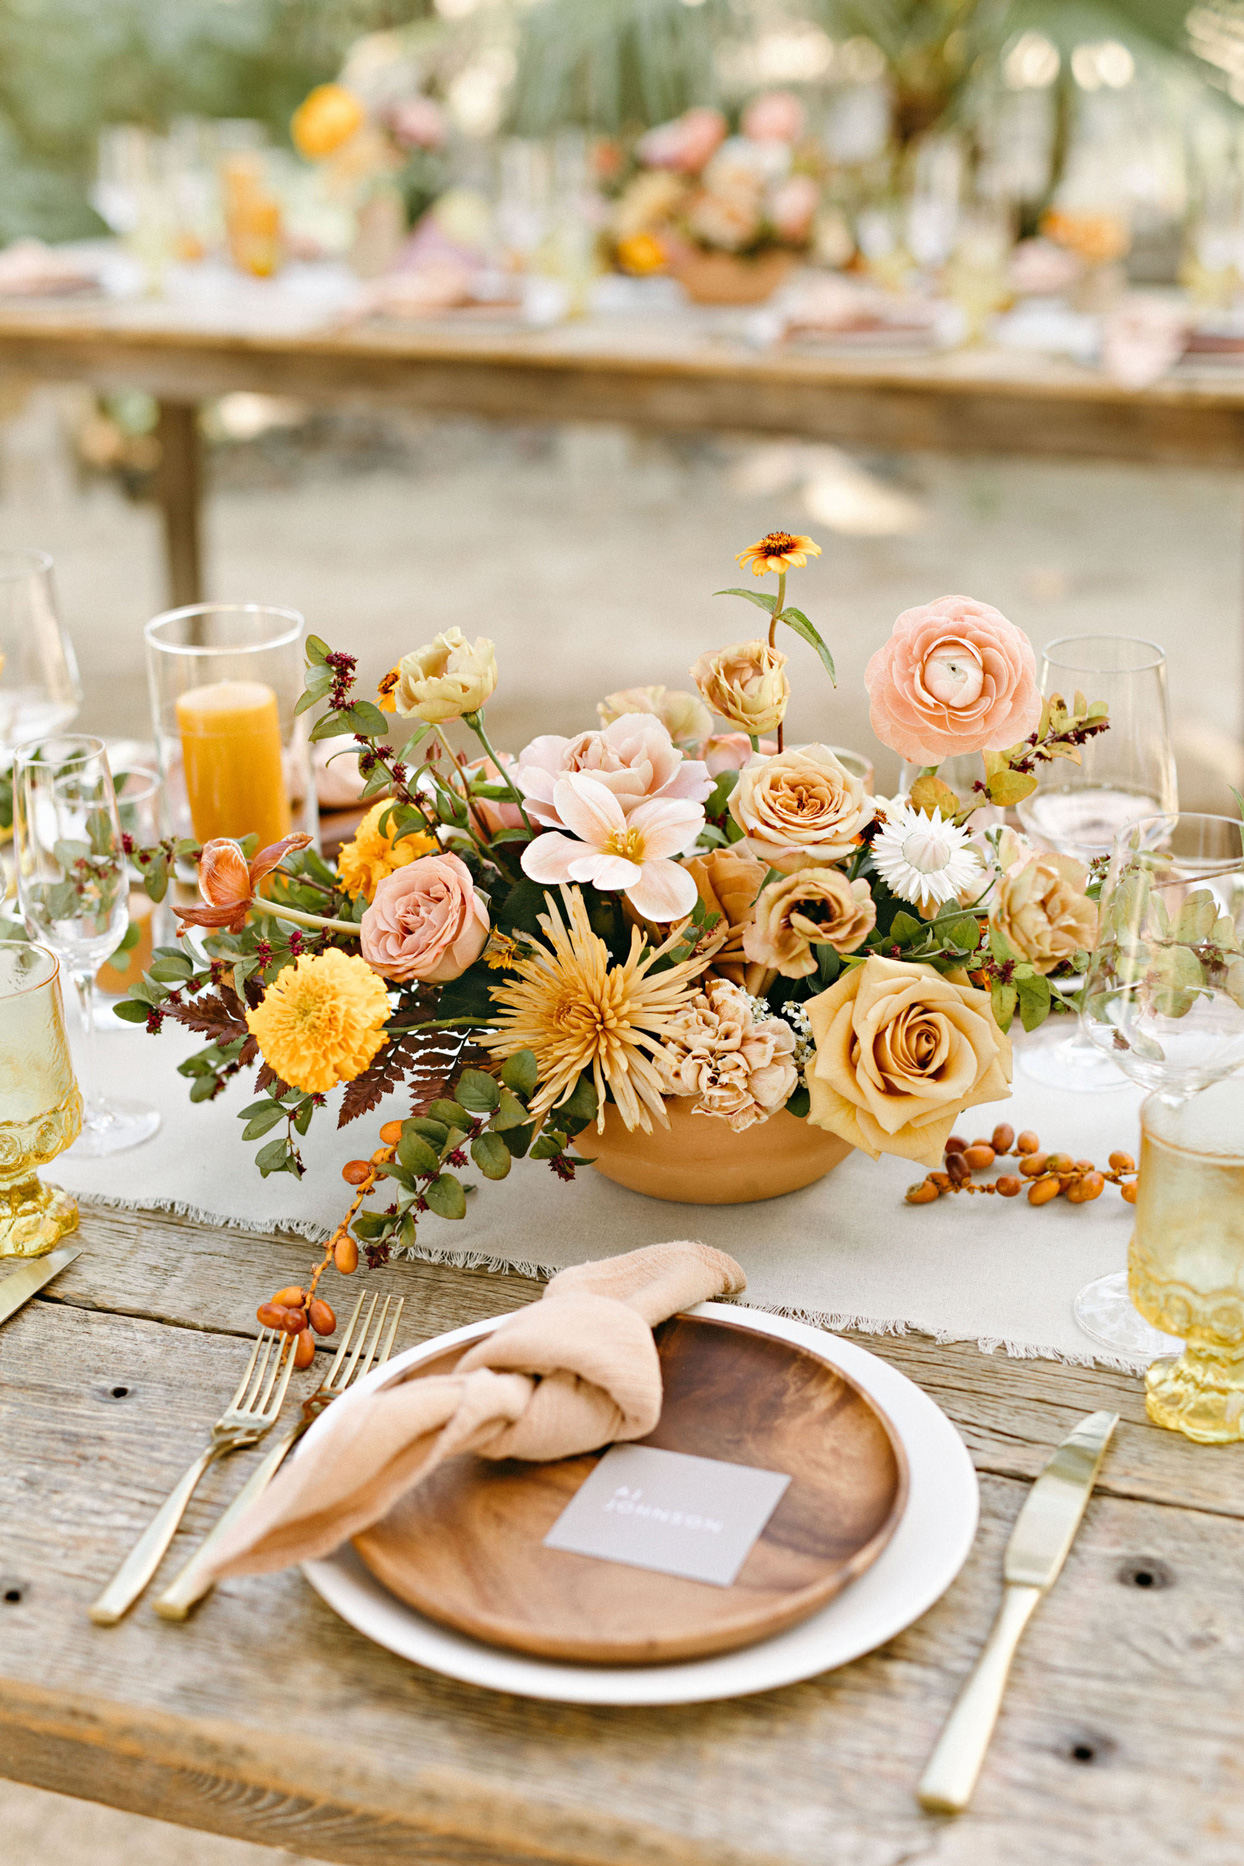 rustic wedding tablescape with gold flatware and wooden plates